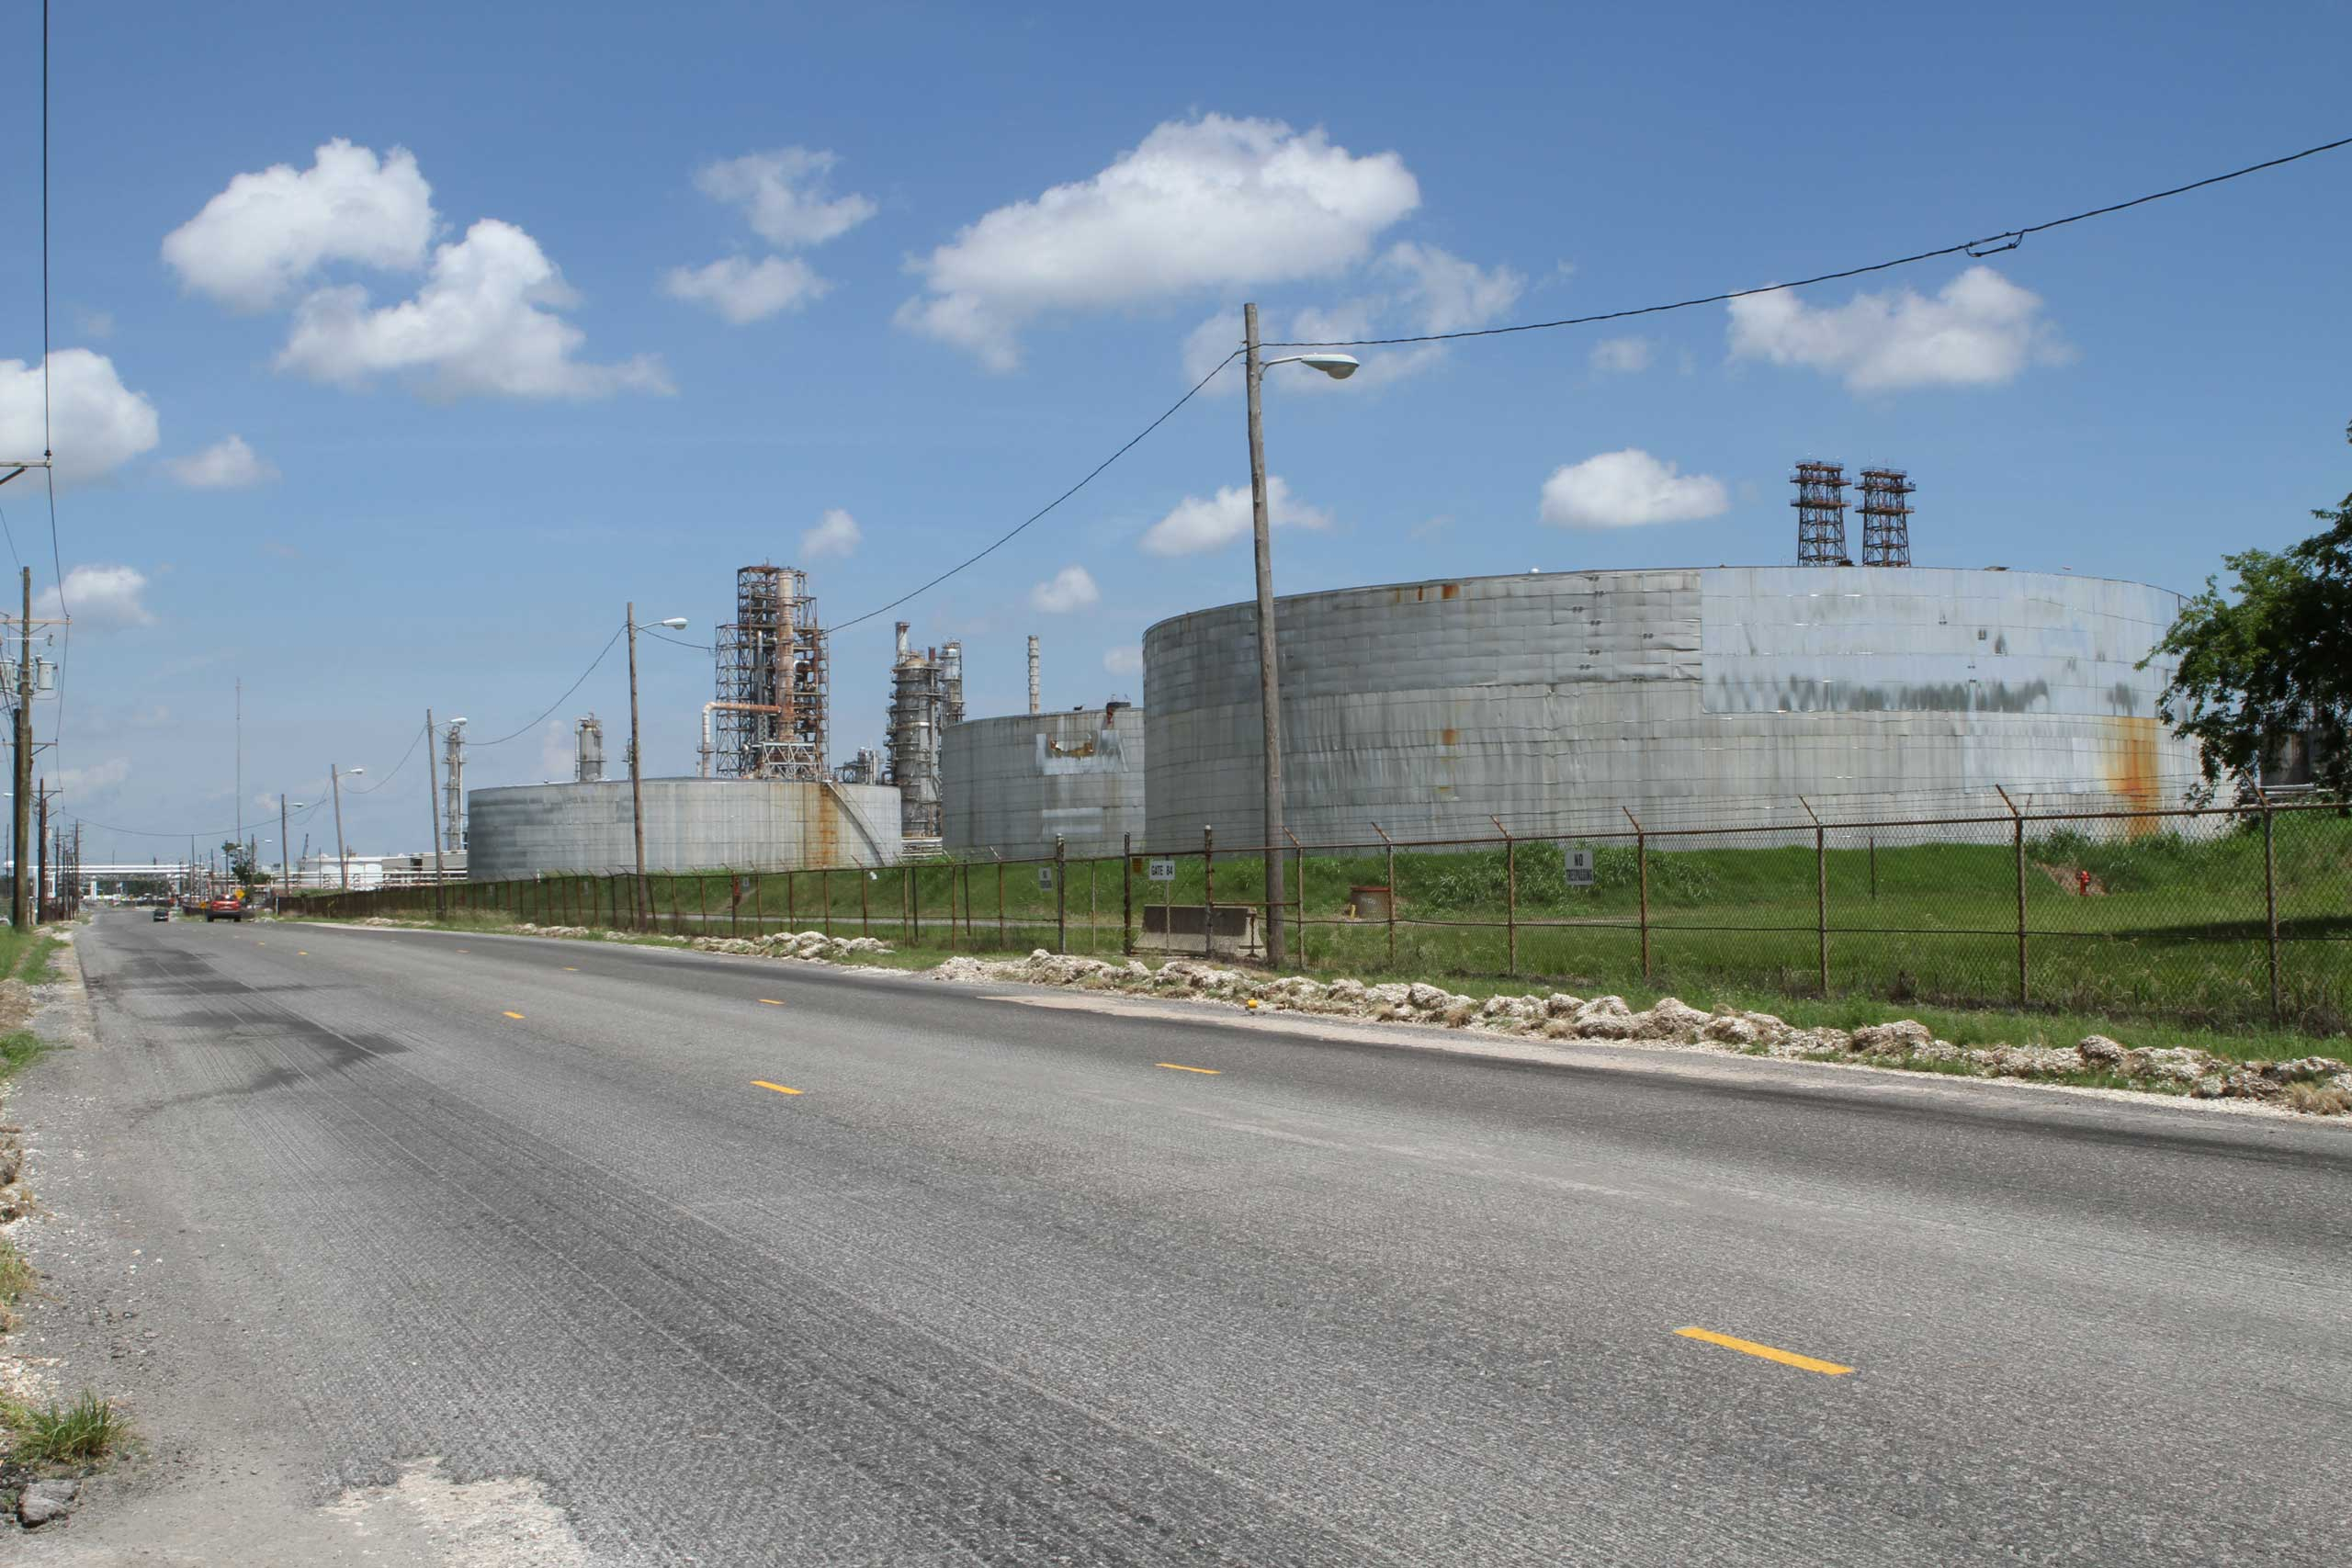 Dozens of companies have plans to build petrochemical plants, oil refineries and fertilizer facilities — such as this ConocoPhillips refinery in Westlake, Louisiana —to take advantage of cheap domestic natural gas from shale fields.